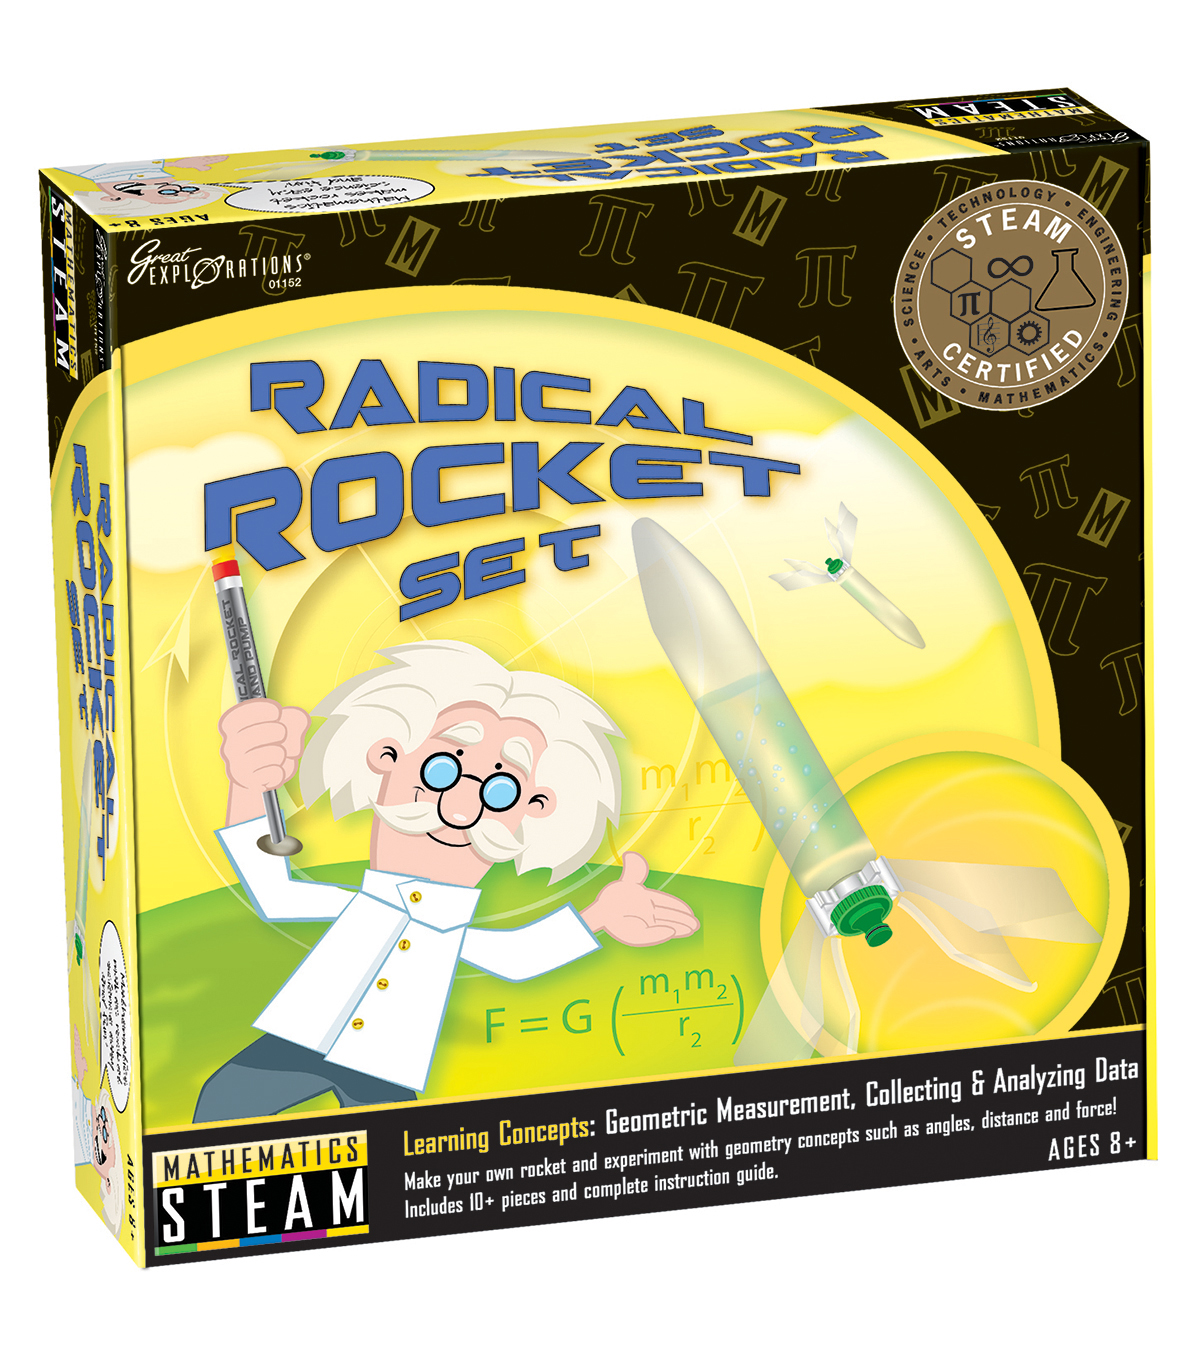 University Games Radical Rocket Steam Science Kit